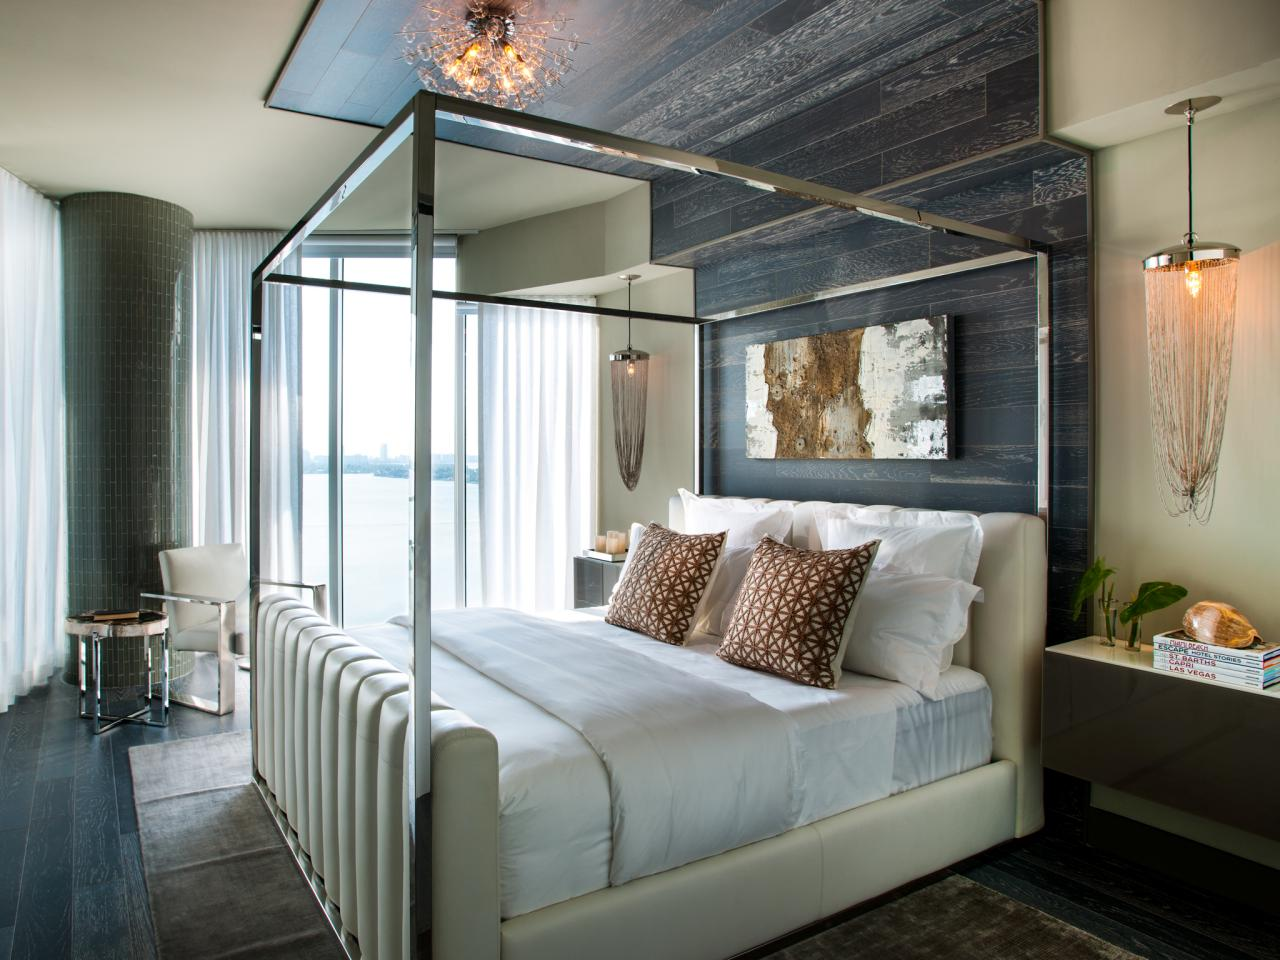 Hgtv urban oasis 2012 master bedroom pictures hgtv for Master bedroom images